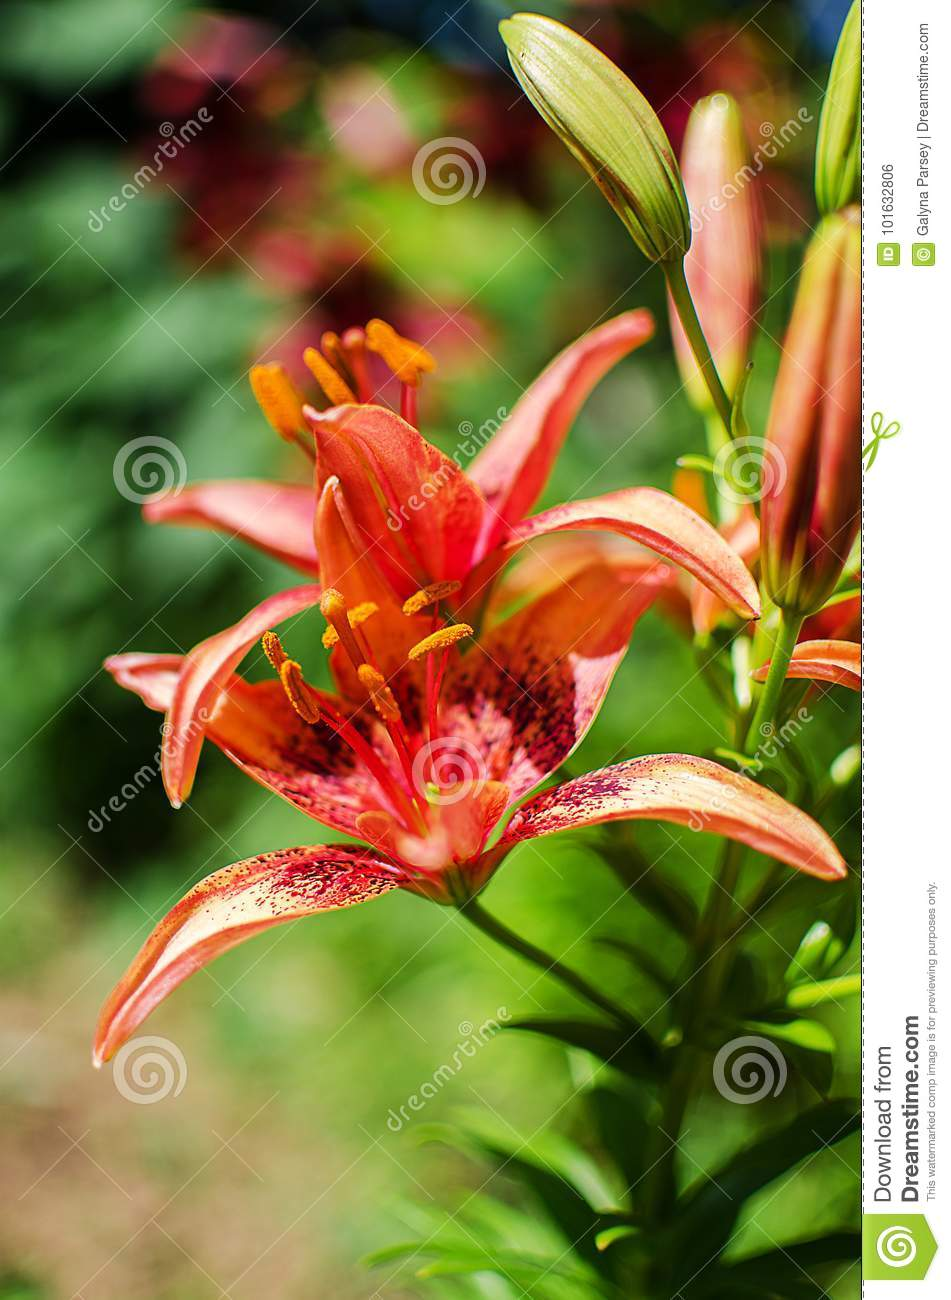 Beautiful lily flowers grow in the summer stock photo image of beautiful lily flowers grow in the summer izmirmasajfo